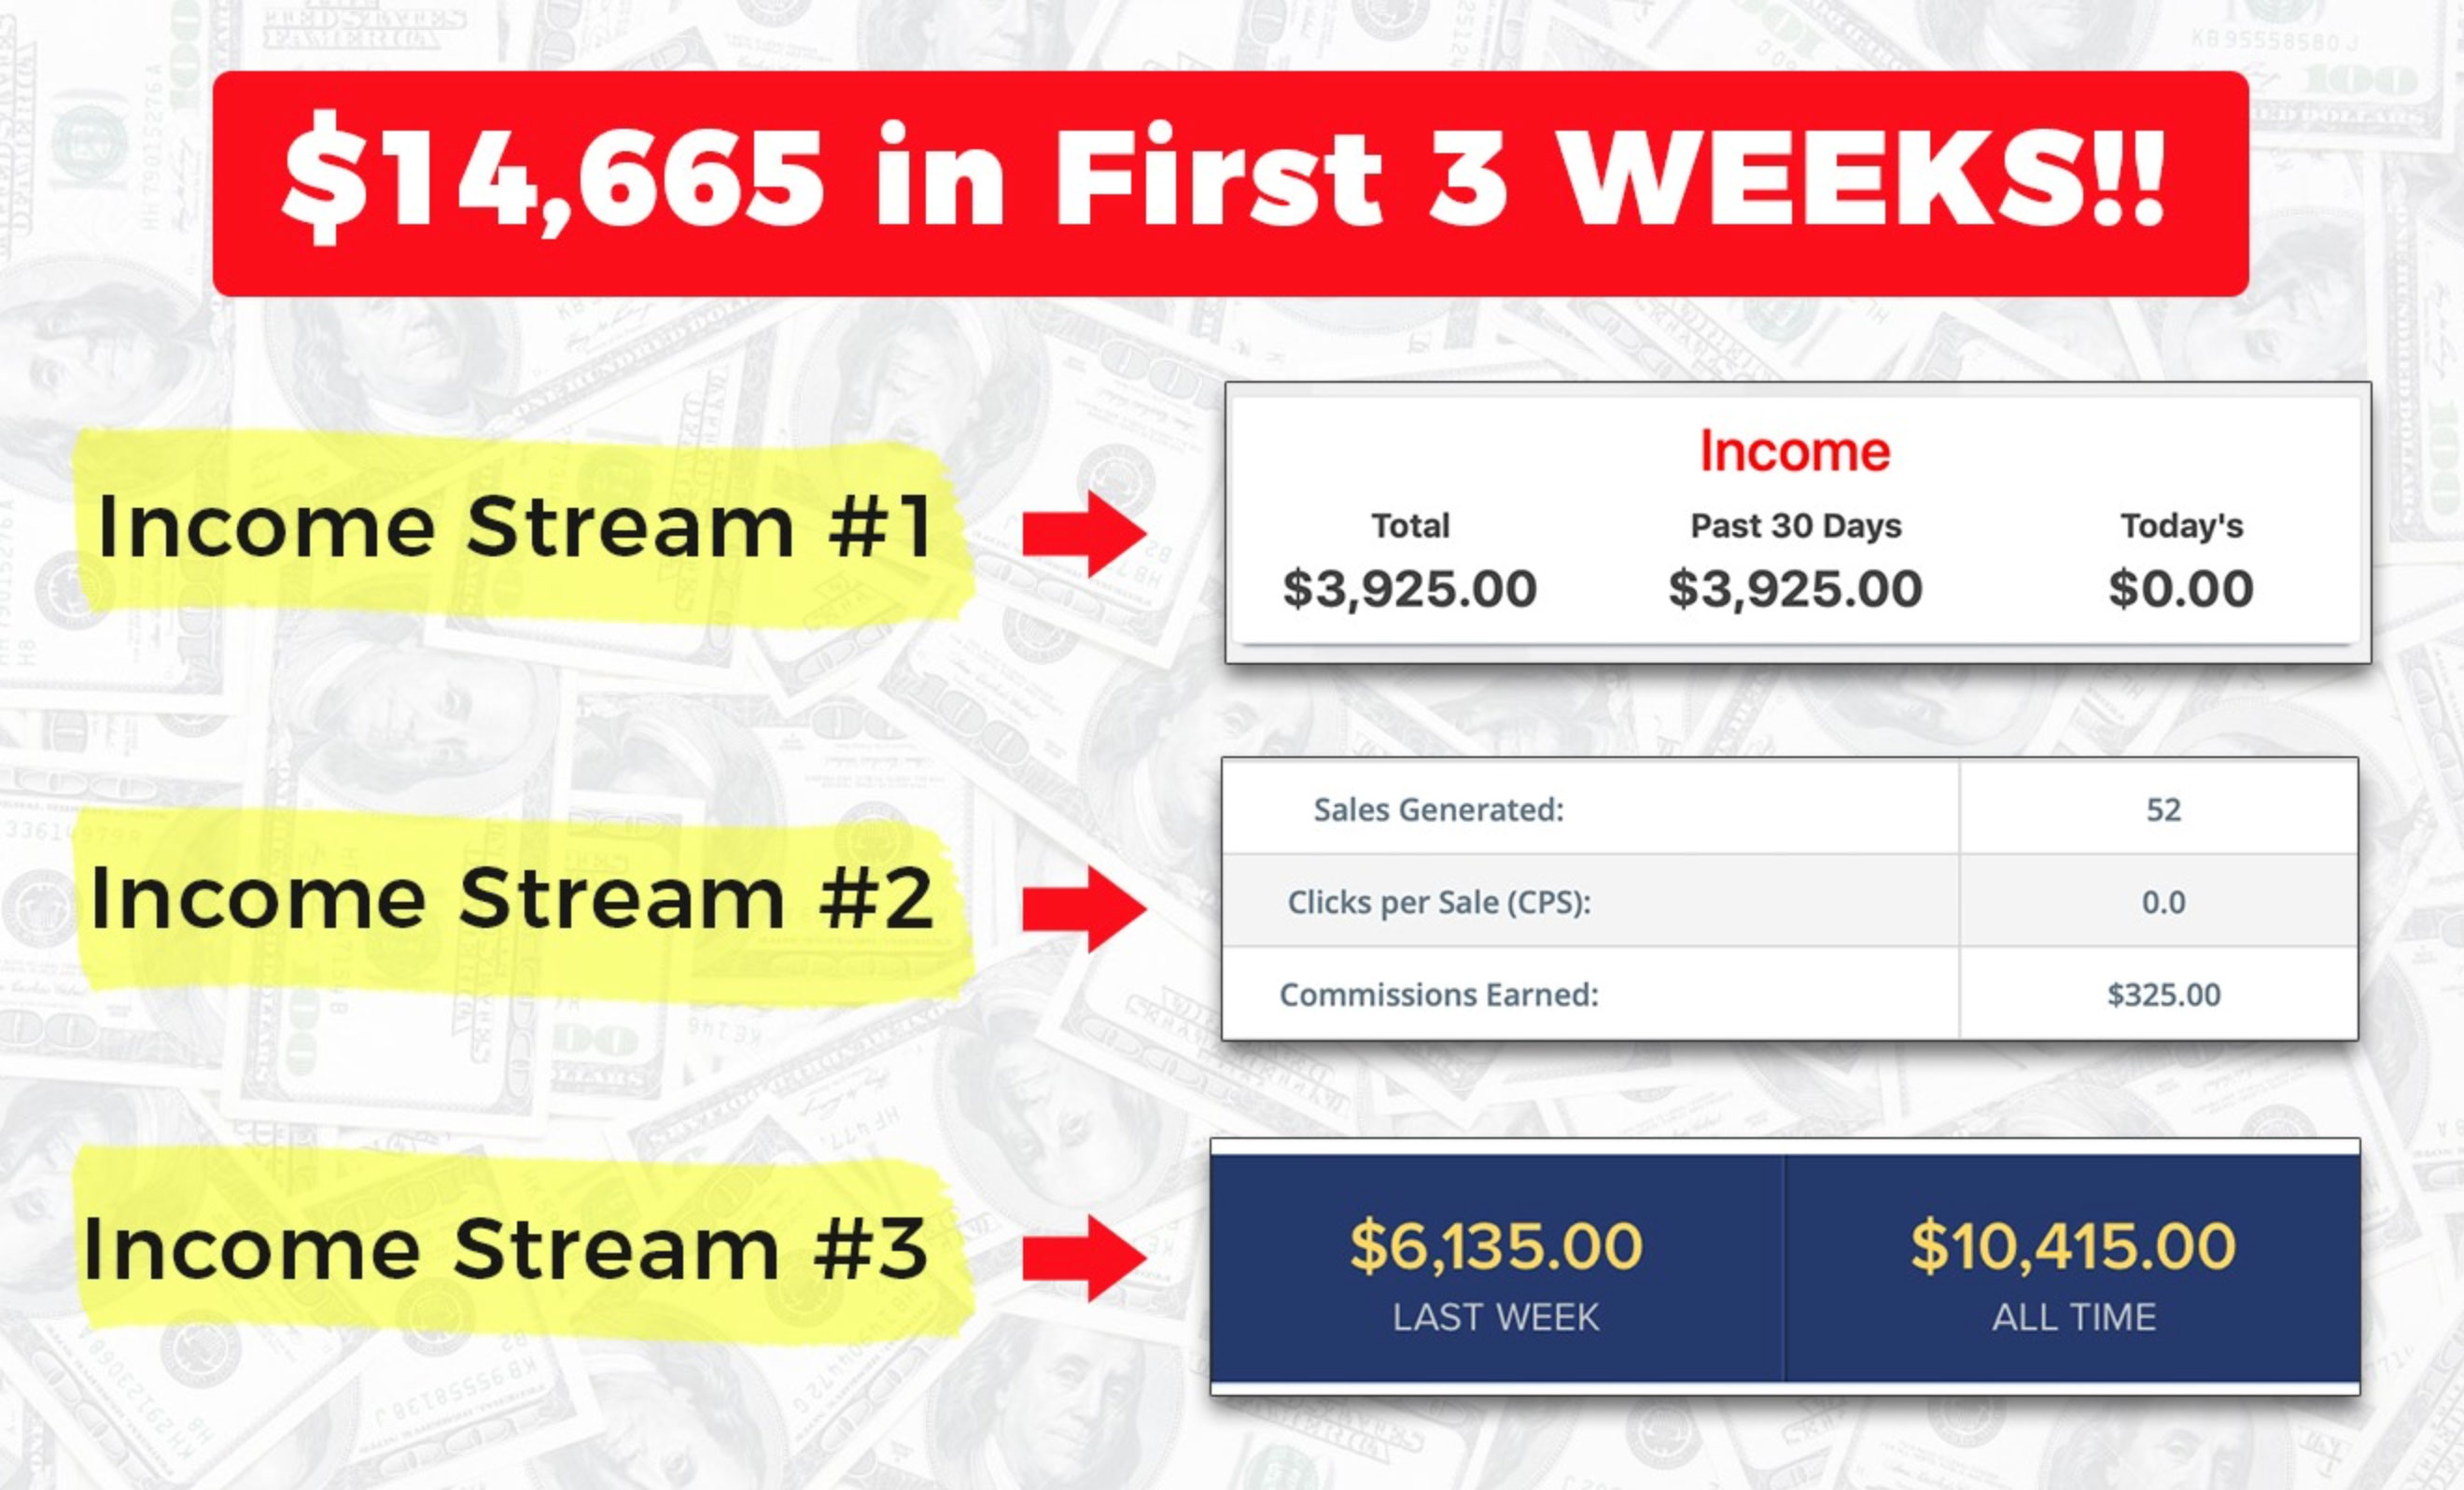 $14.665 in First 3 Weeks!!